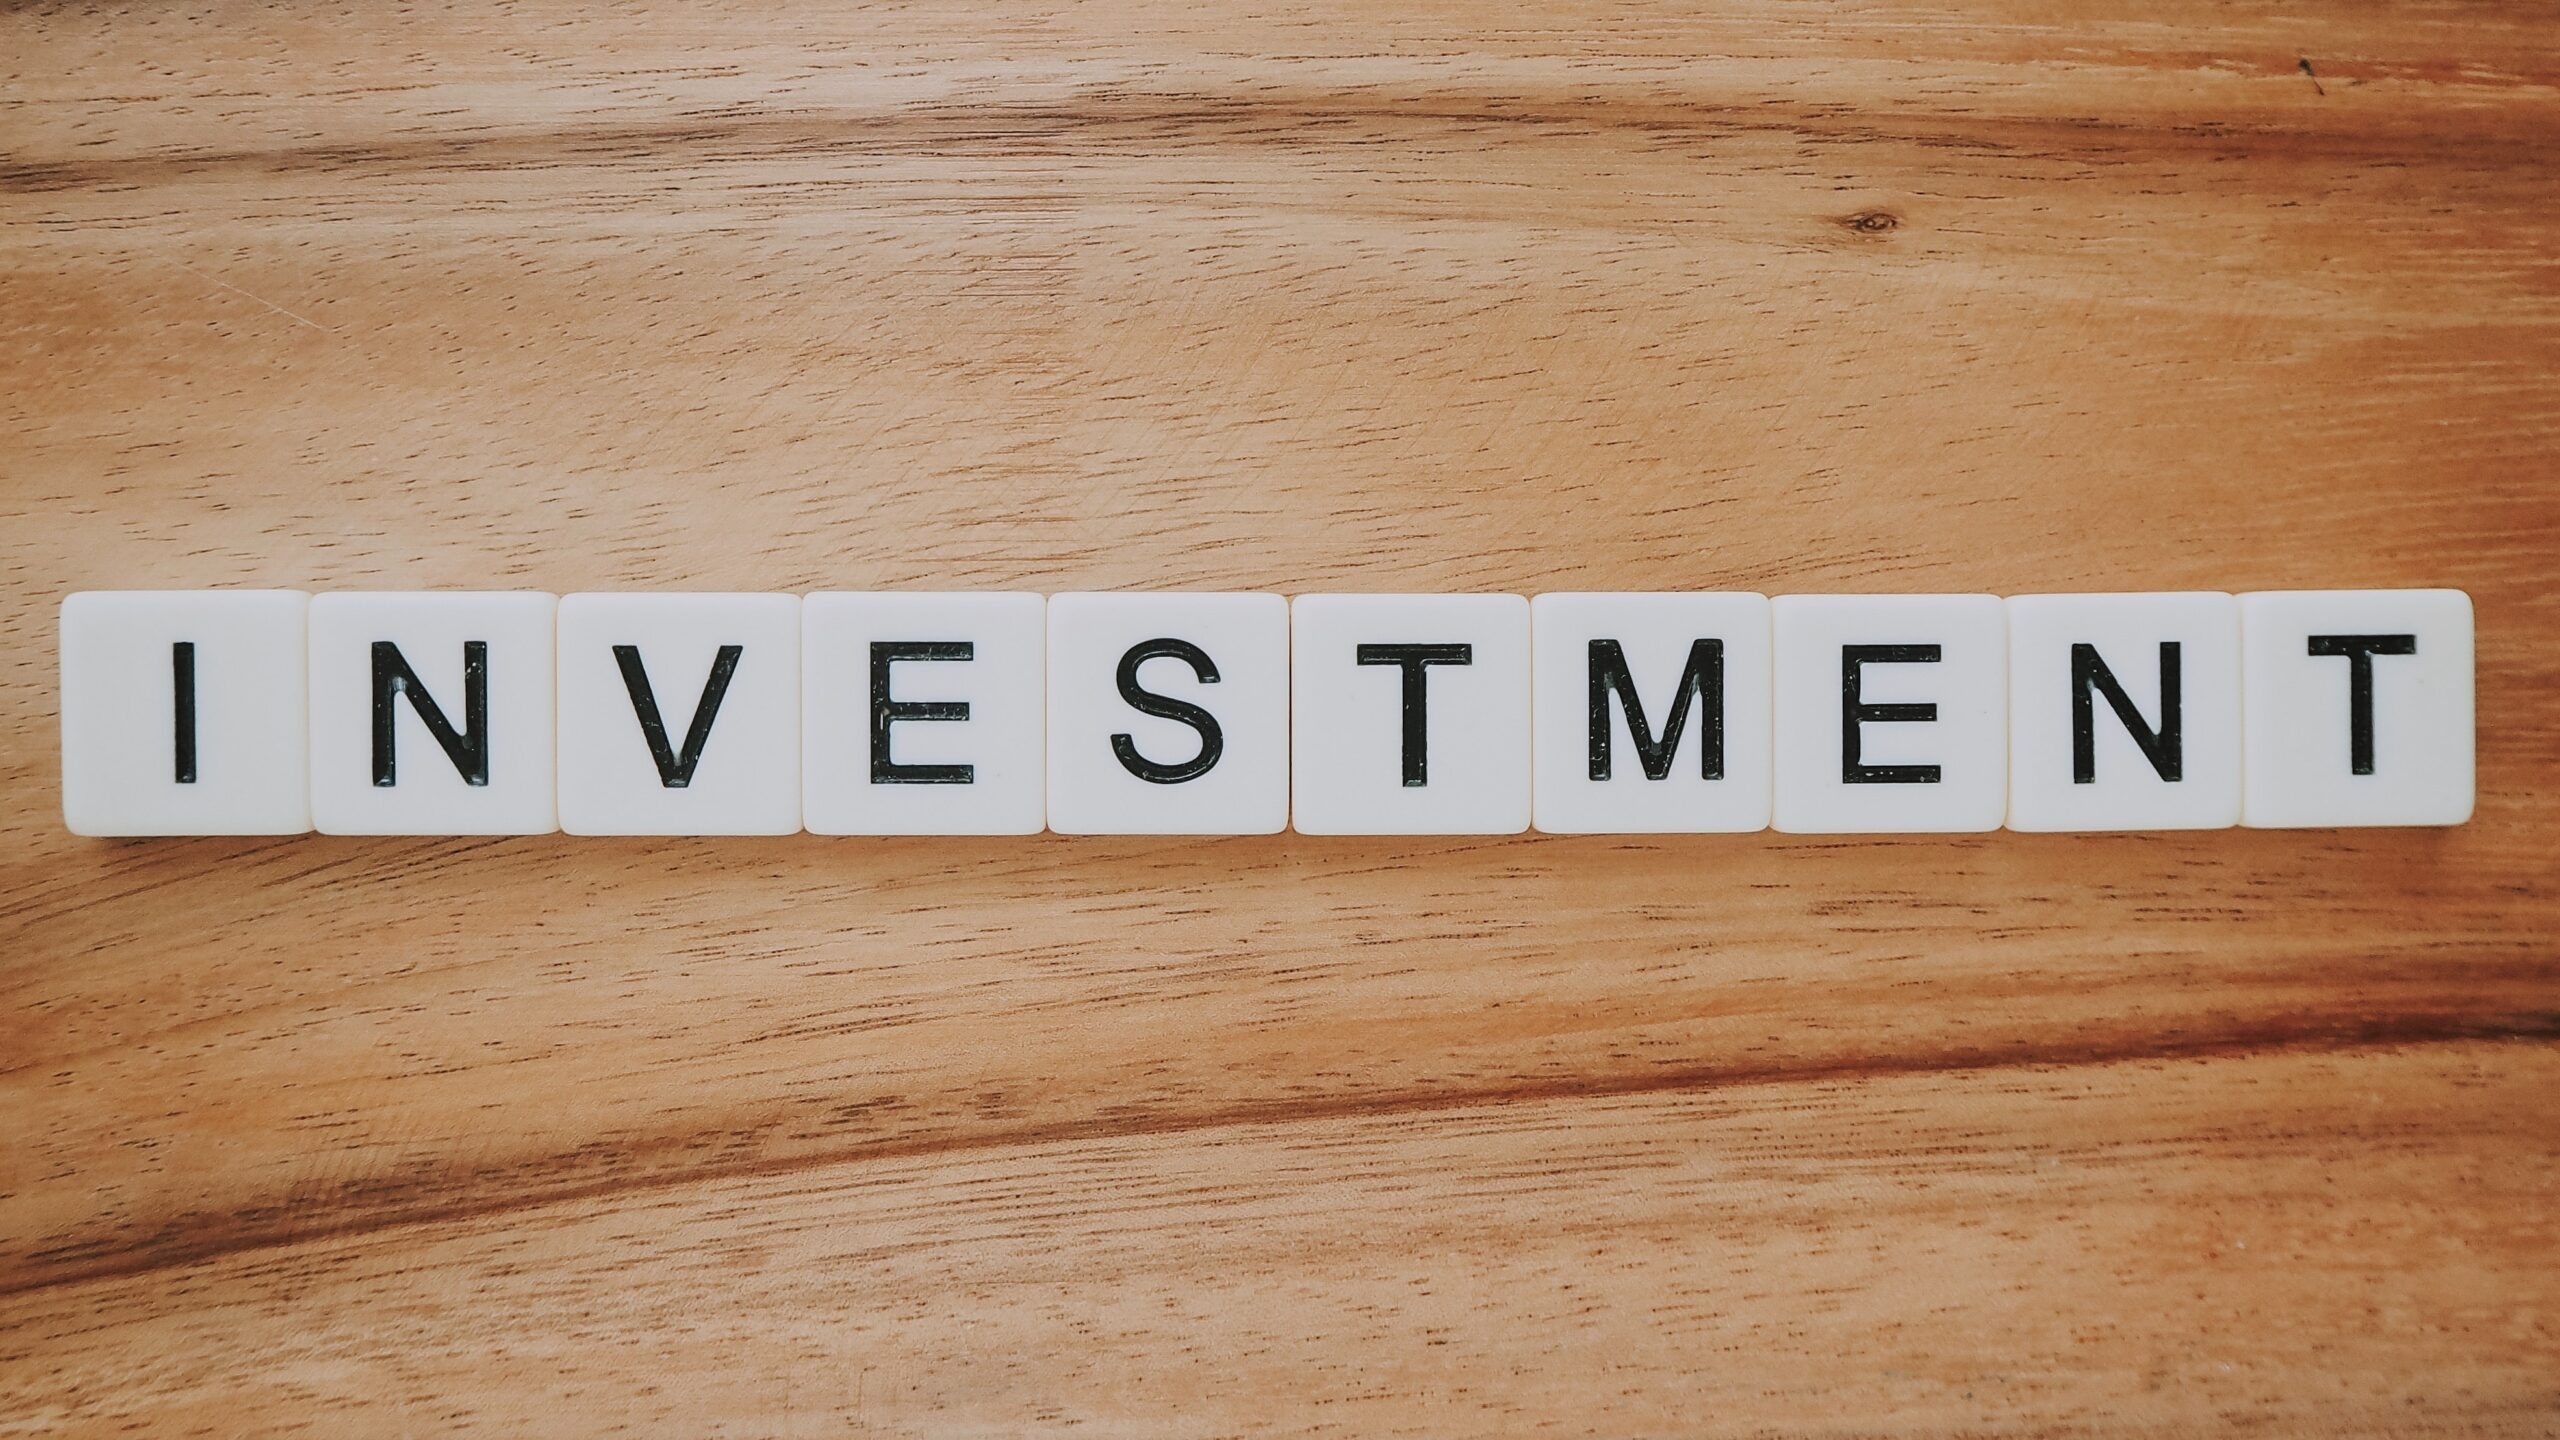 What are investments?